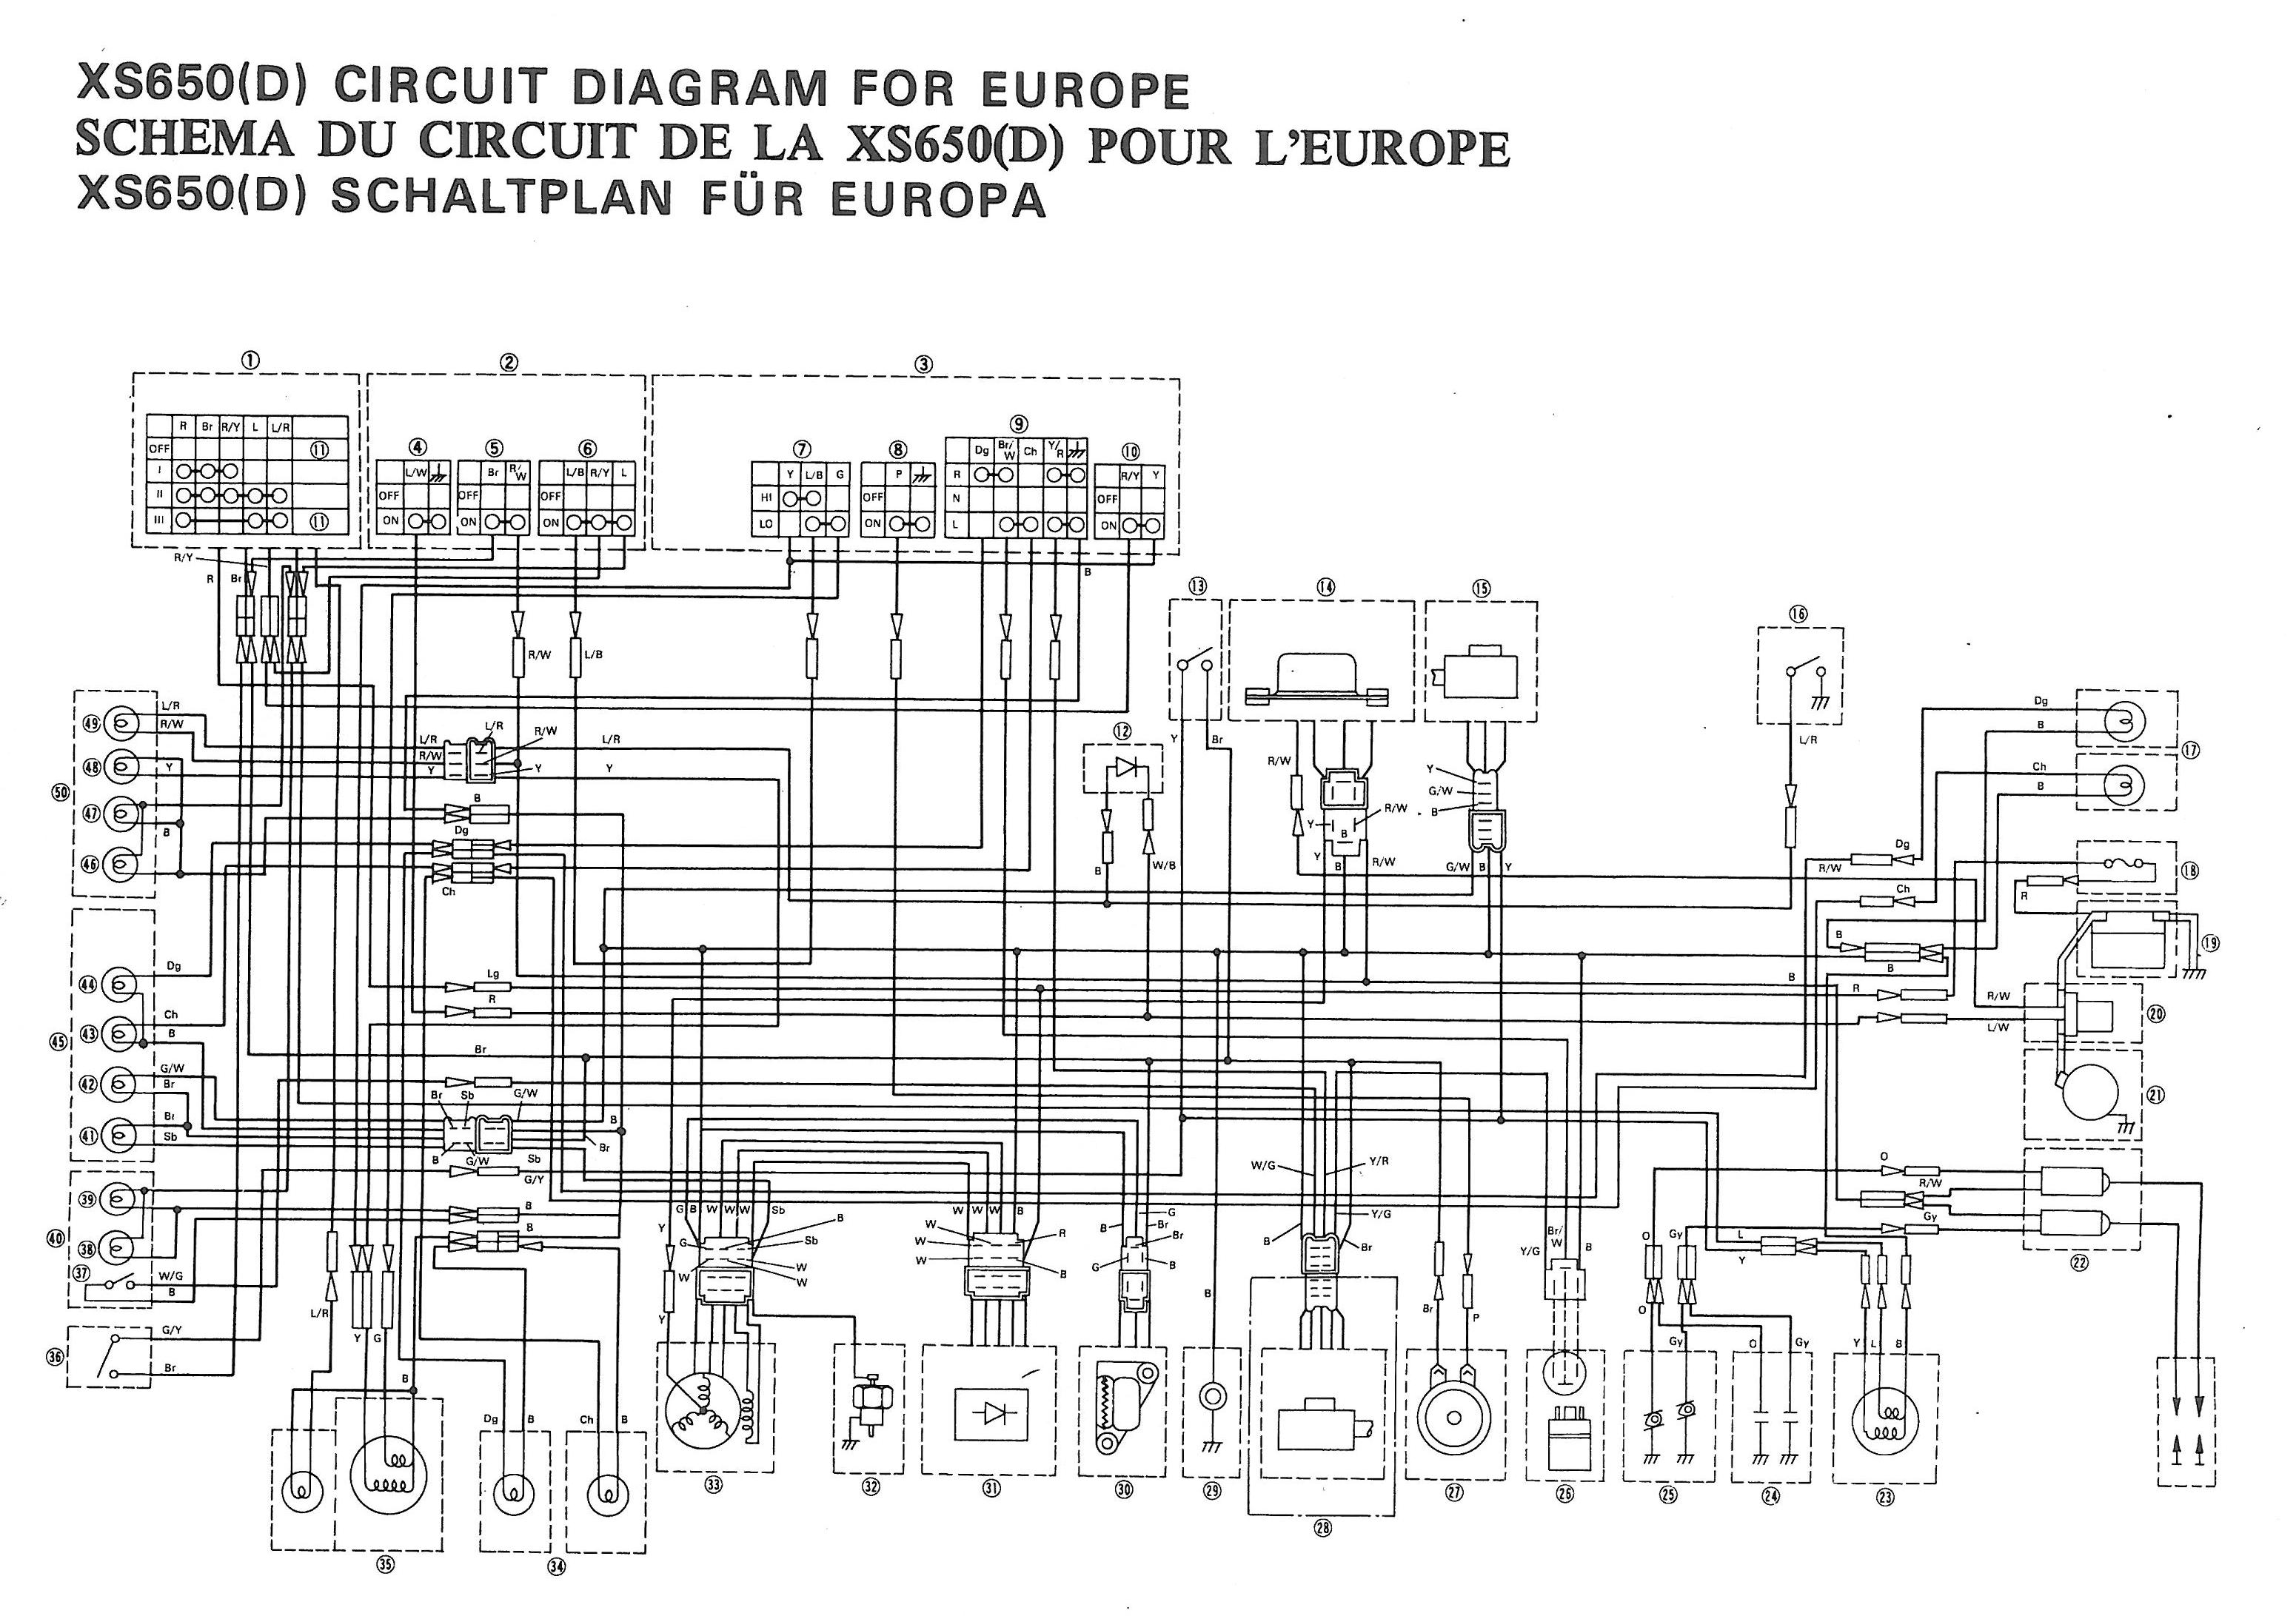 WRG-7297] 1980 Xt250 Wiring Diagram on